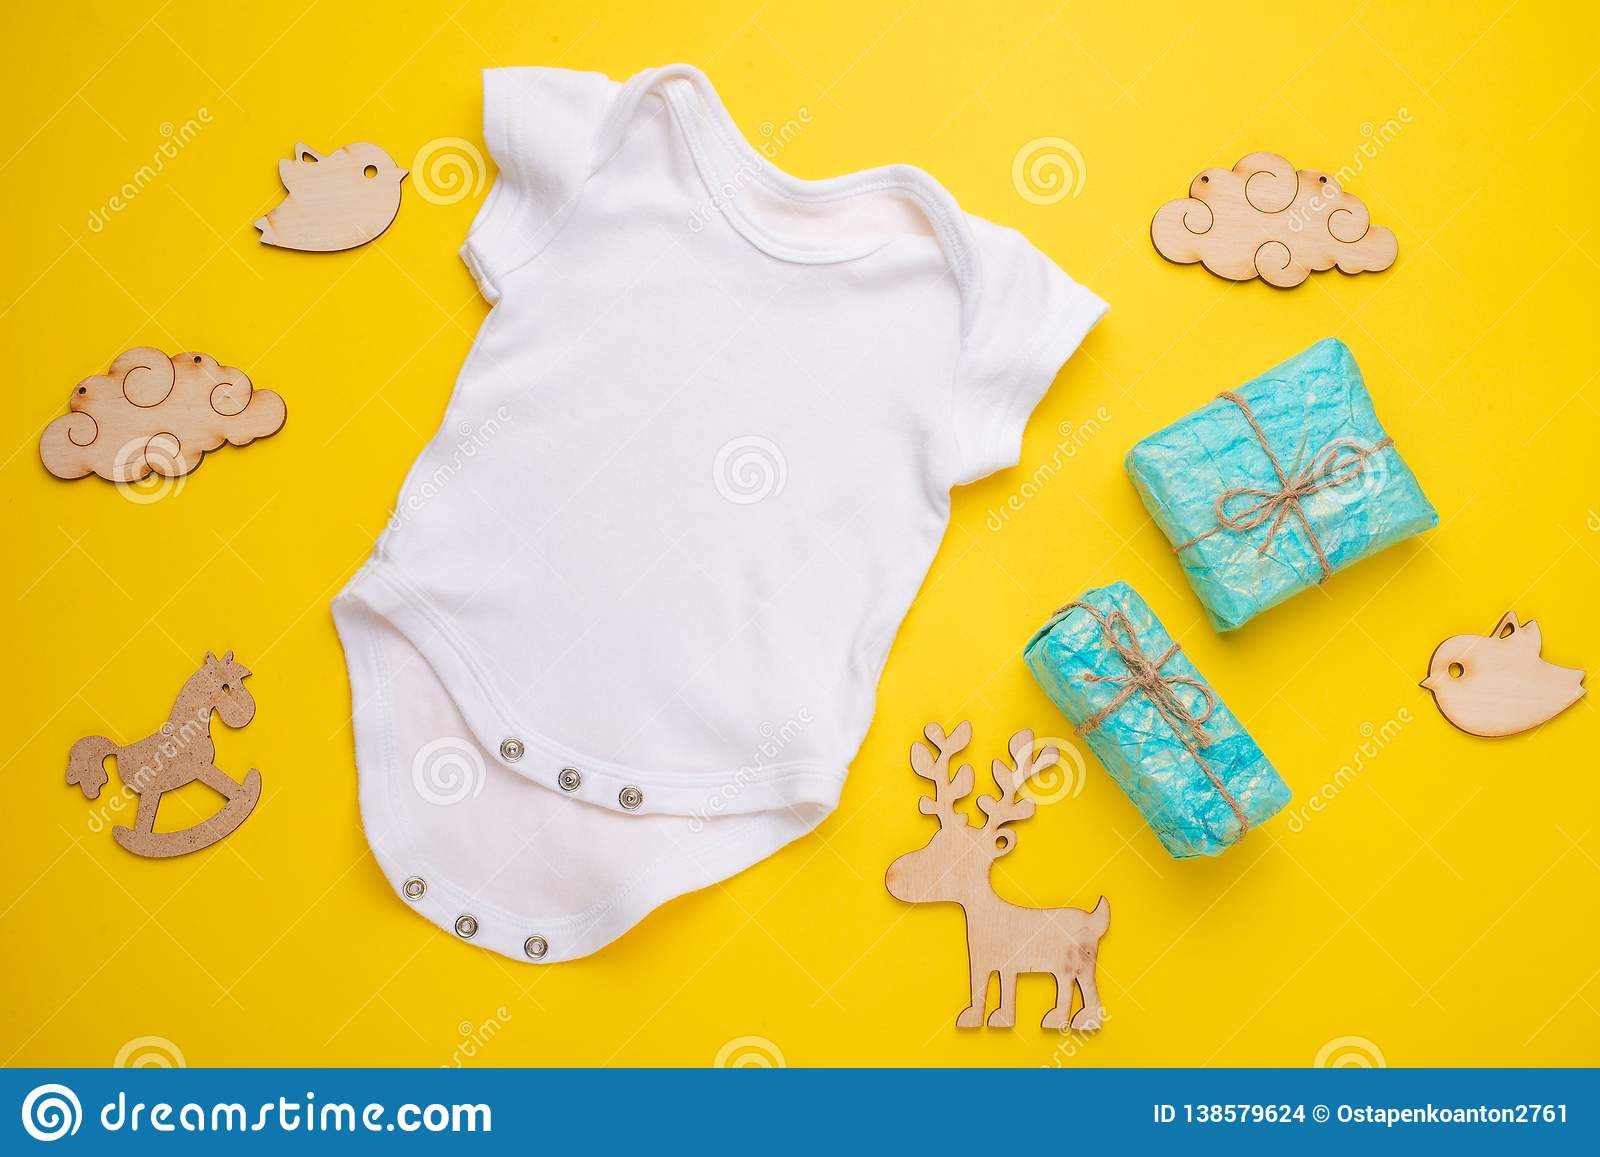 e3e59f9b809ce Mockup Flat Lay A White Baby Shirt With Wooden Toys On A Yellow ...